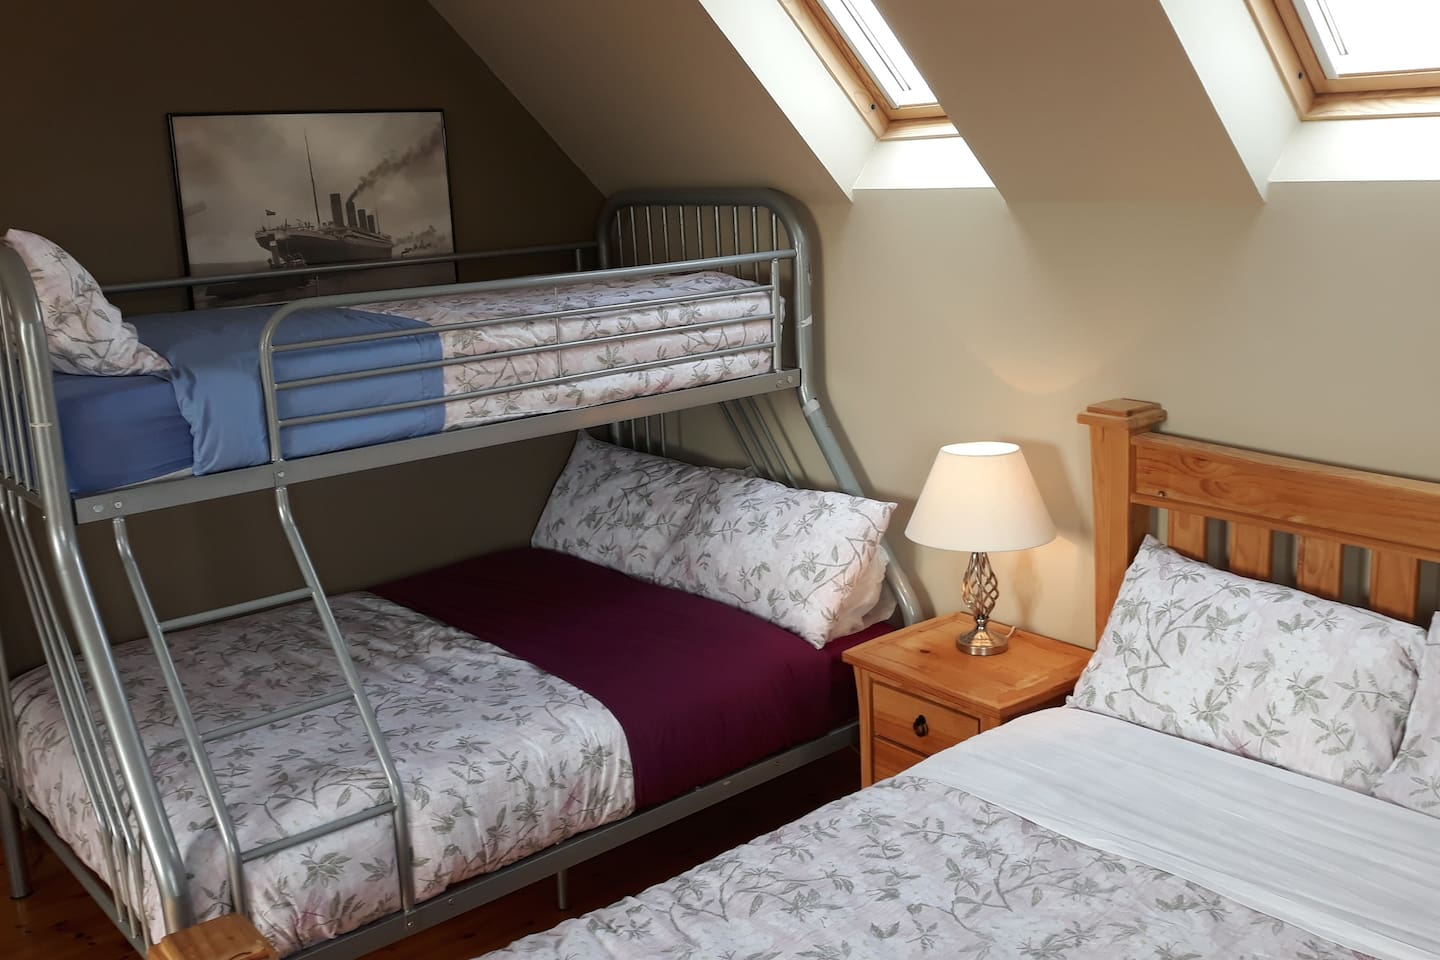 King size + Double + Single bunk on top